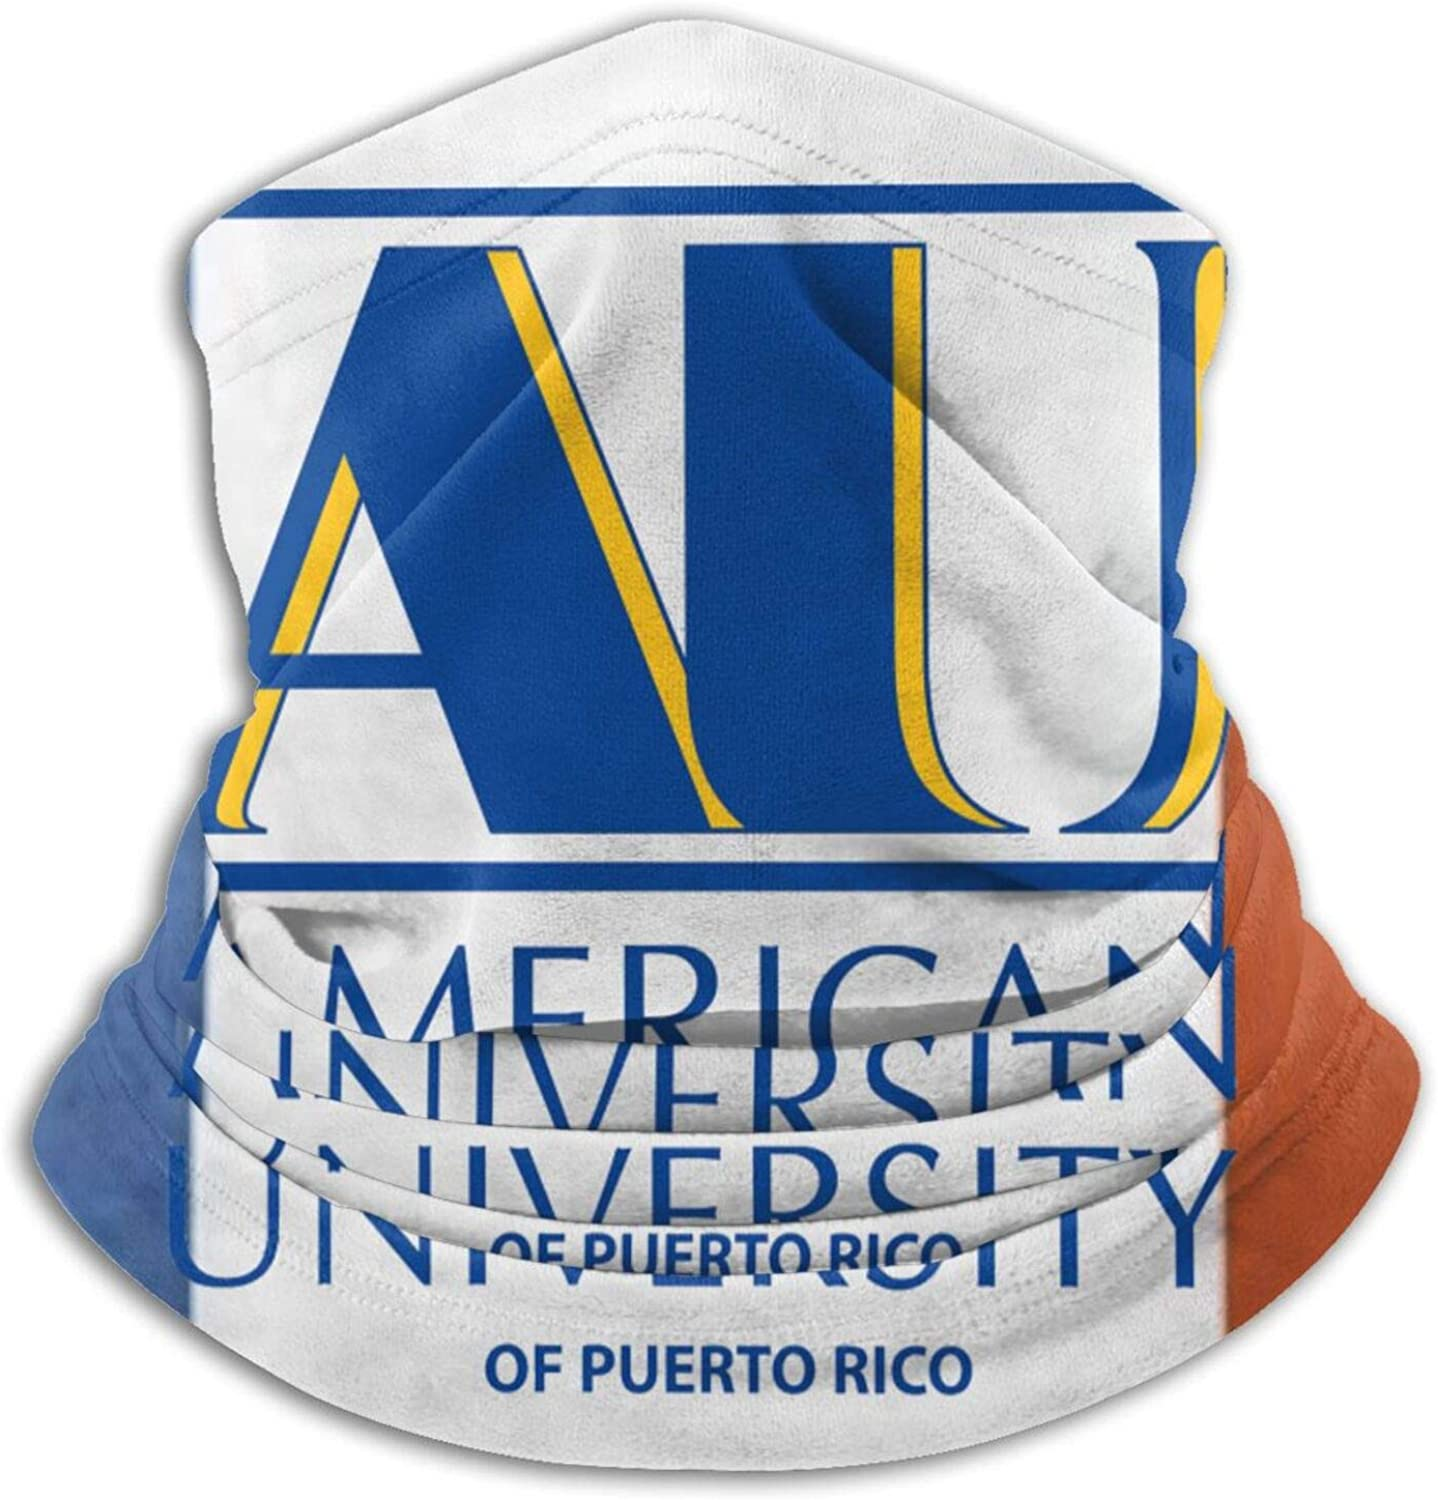 American A University Of Puerto Rico Unisex Comfort Microfiber Neck Gaiter Variety Scarf Face Motorcycle Cycling Riding Running Headbands.